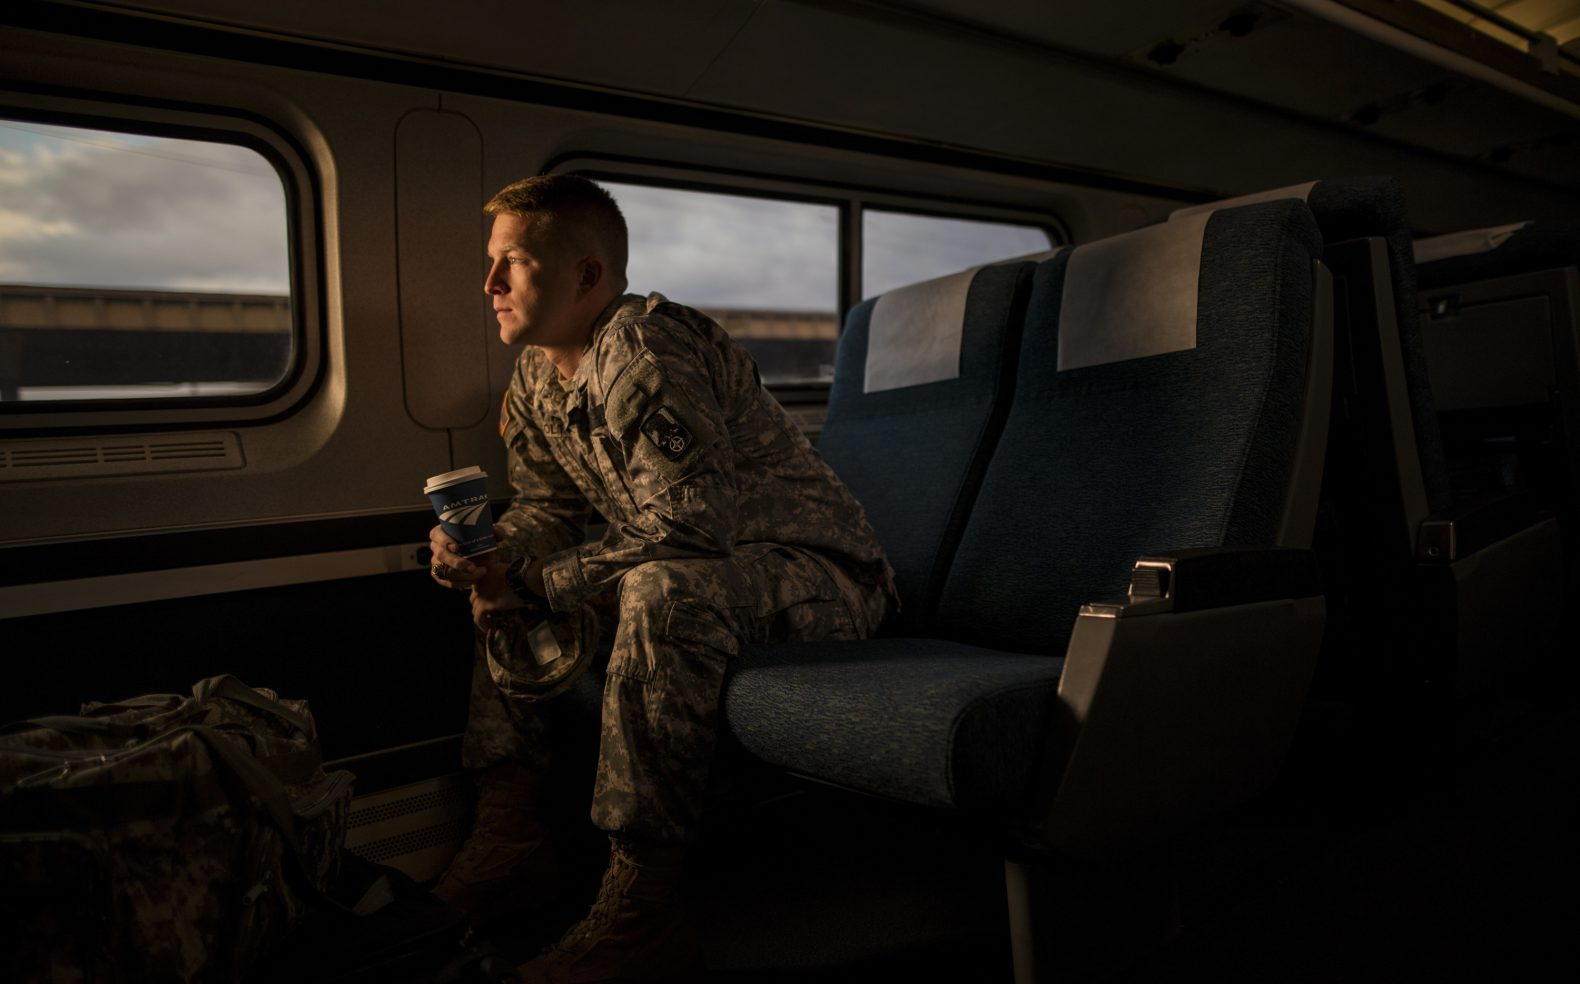 Professional photograph of USA Military soldier in uniform enjoying a cup of coffee while riding the Amtrak train in early morning.